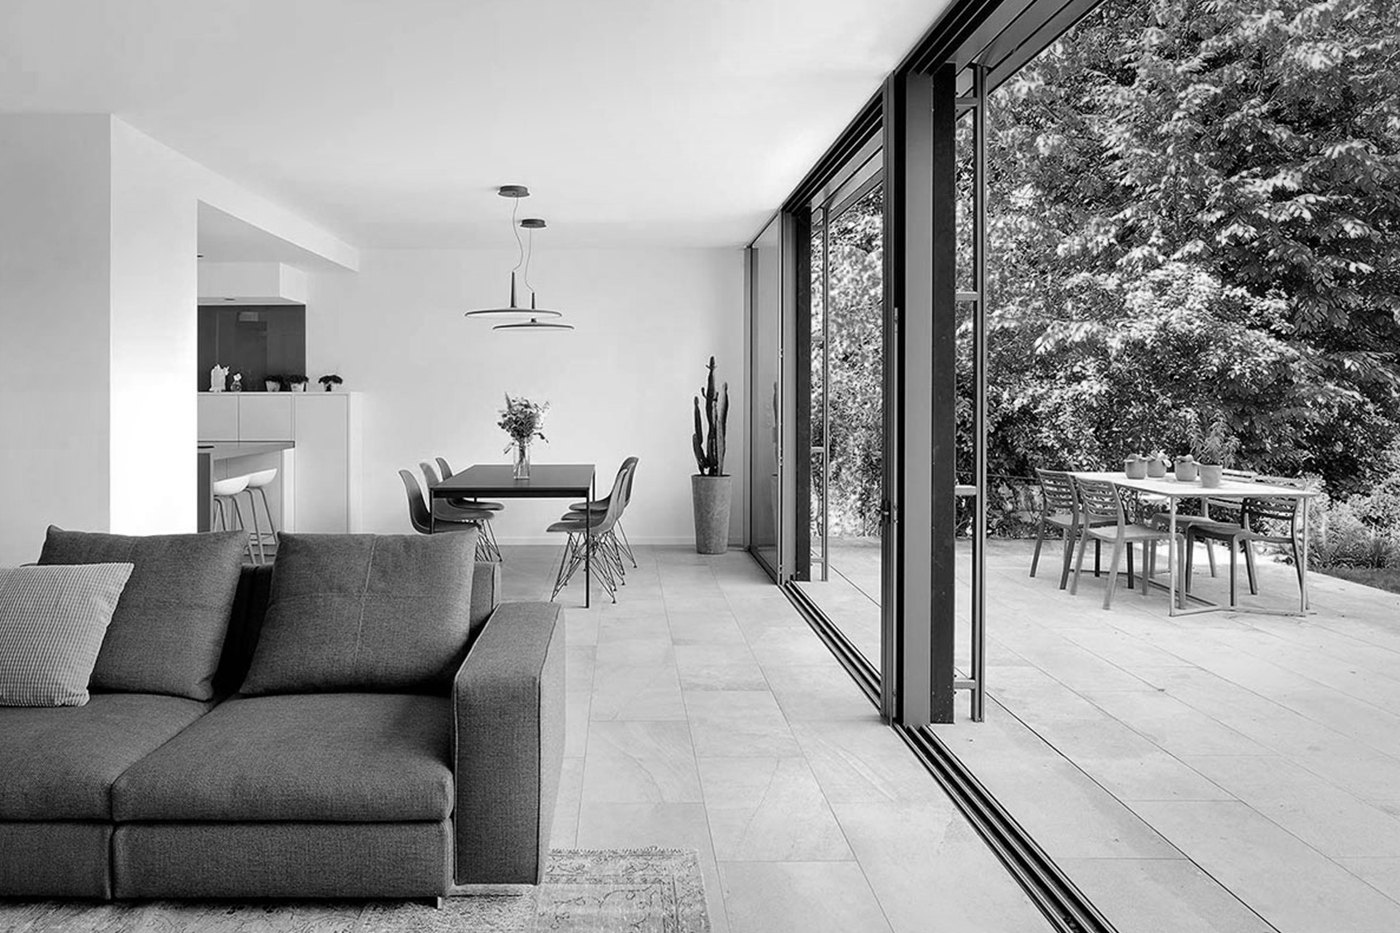 maison-contemporaine-en-ossature-bois_caluire-et-cuire-69_photo-interieur-salon-baies-vitrees-salle-a-manger